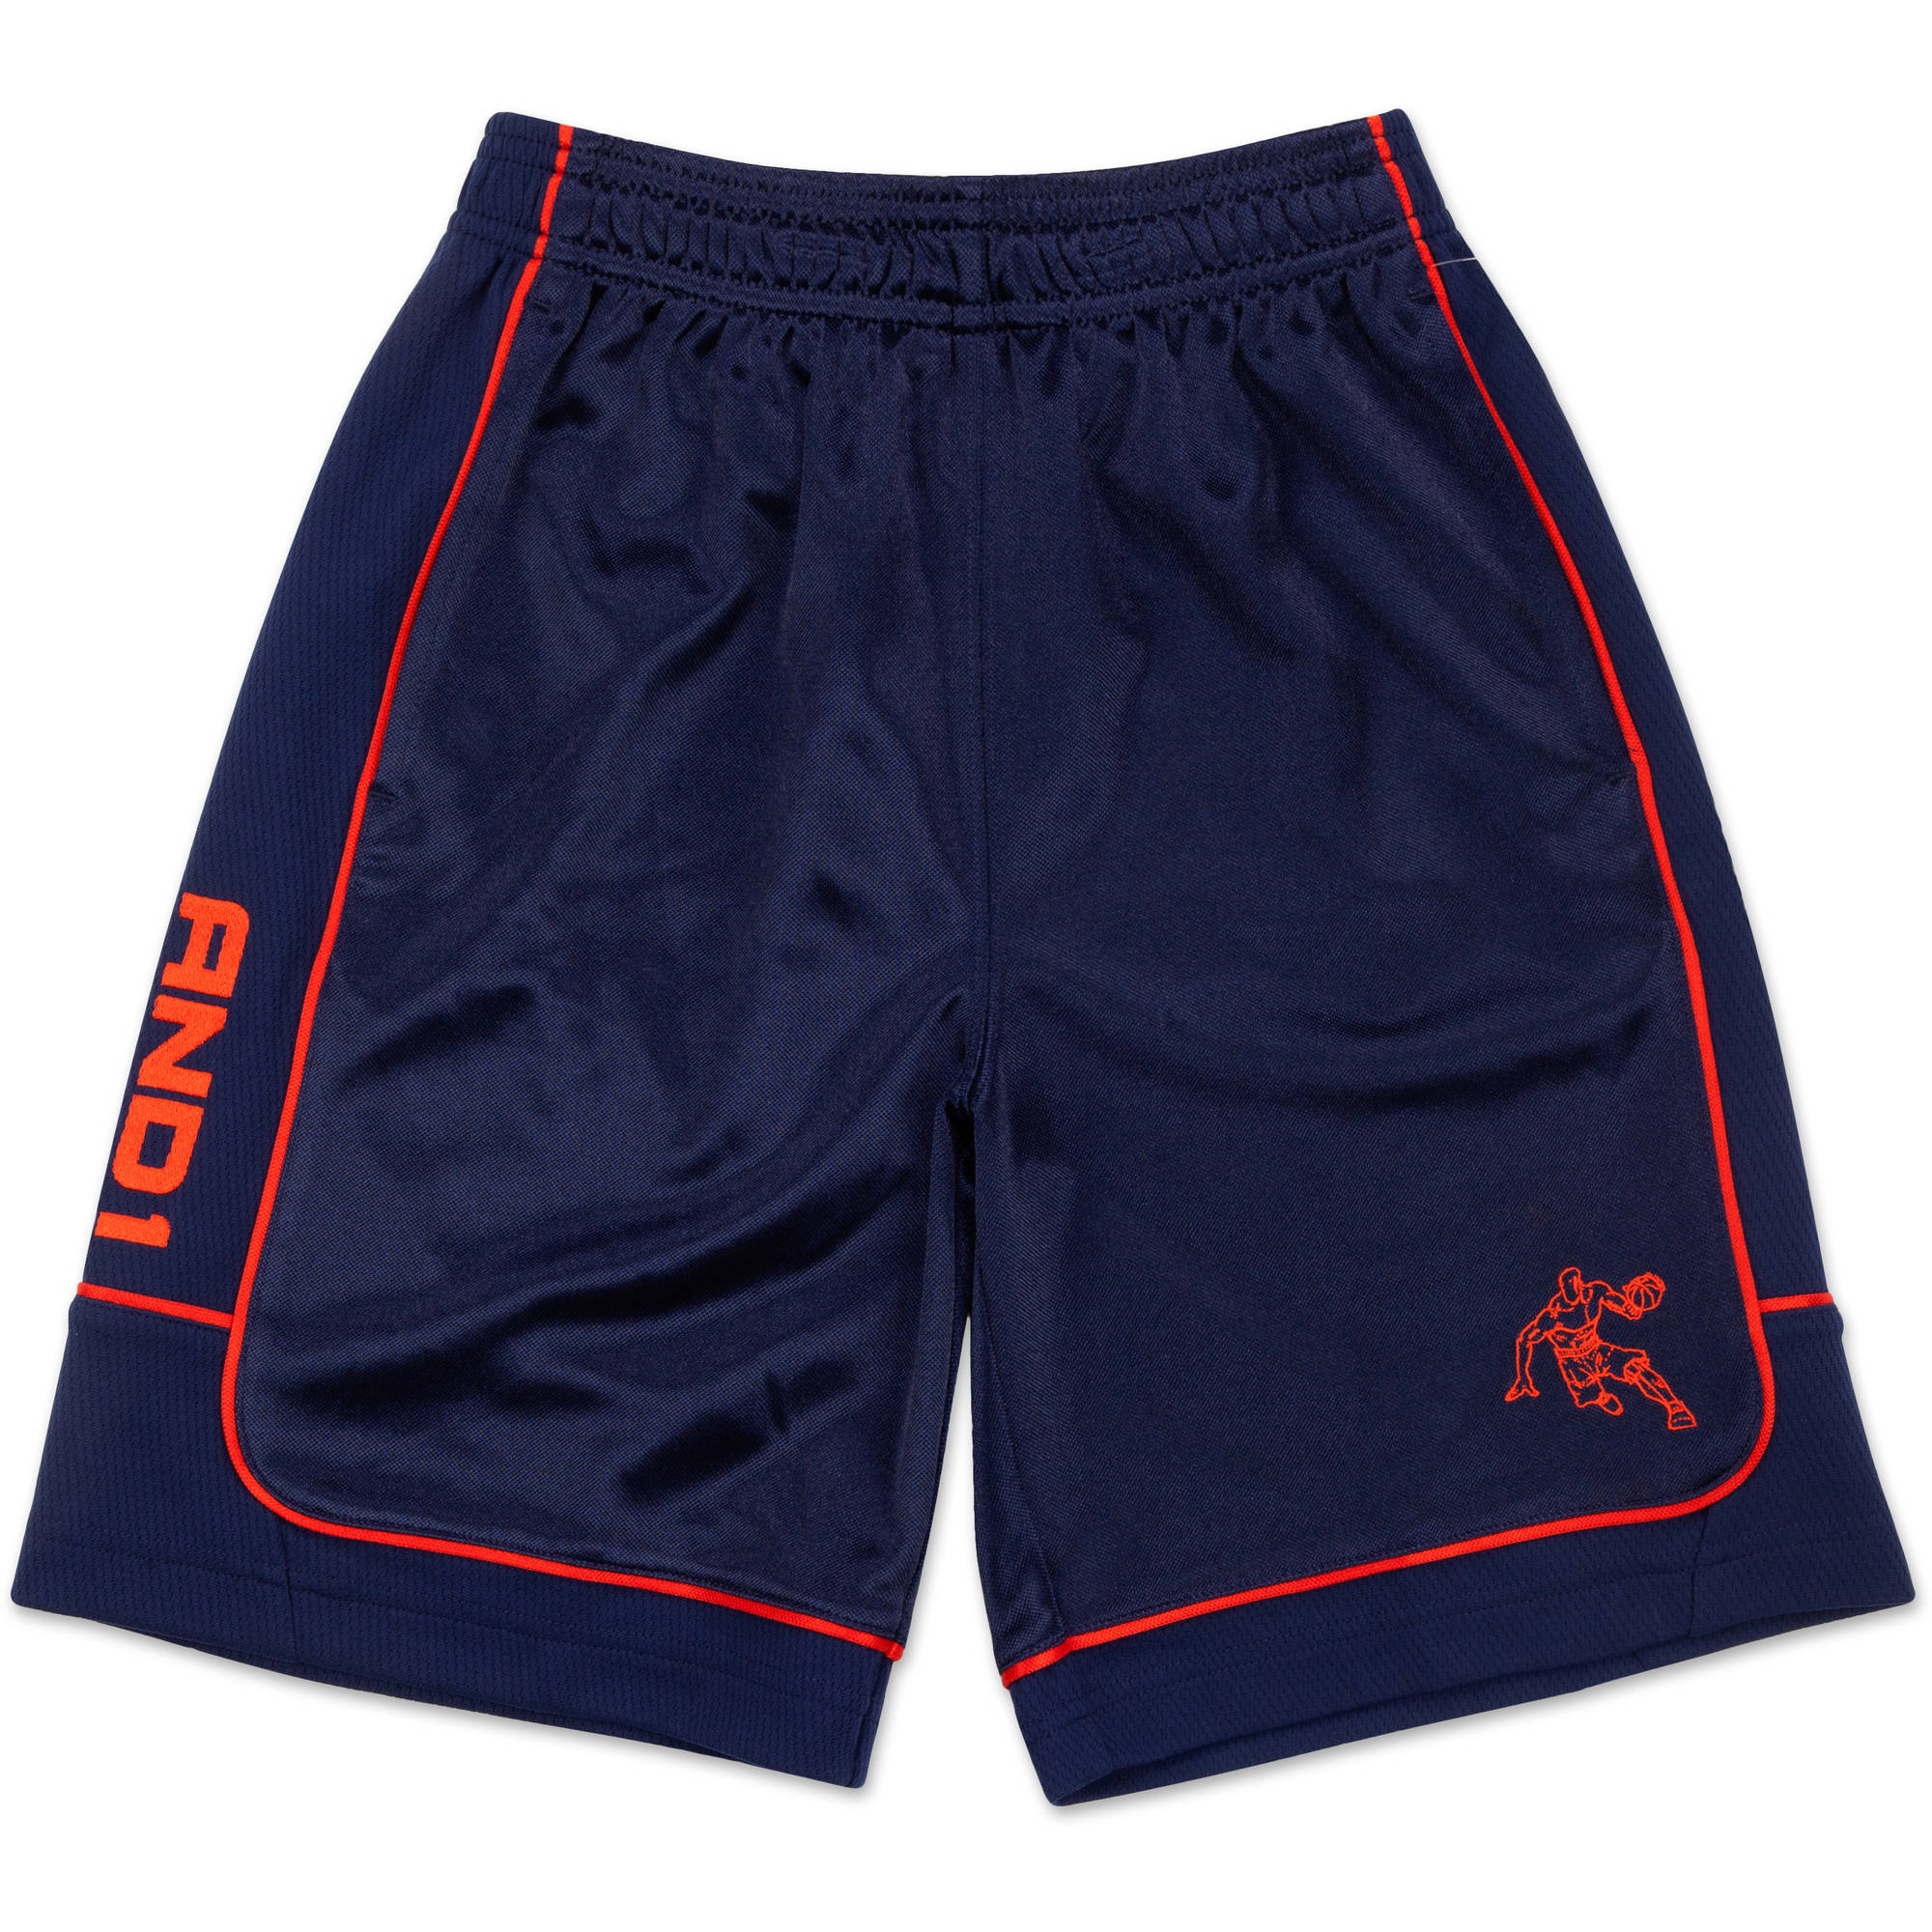 AND1 Boys All Courts Color Blocked Game Short